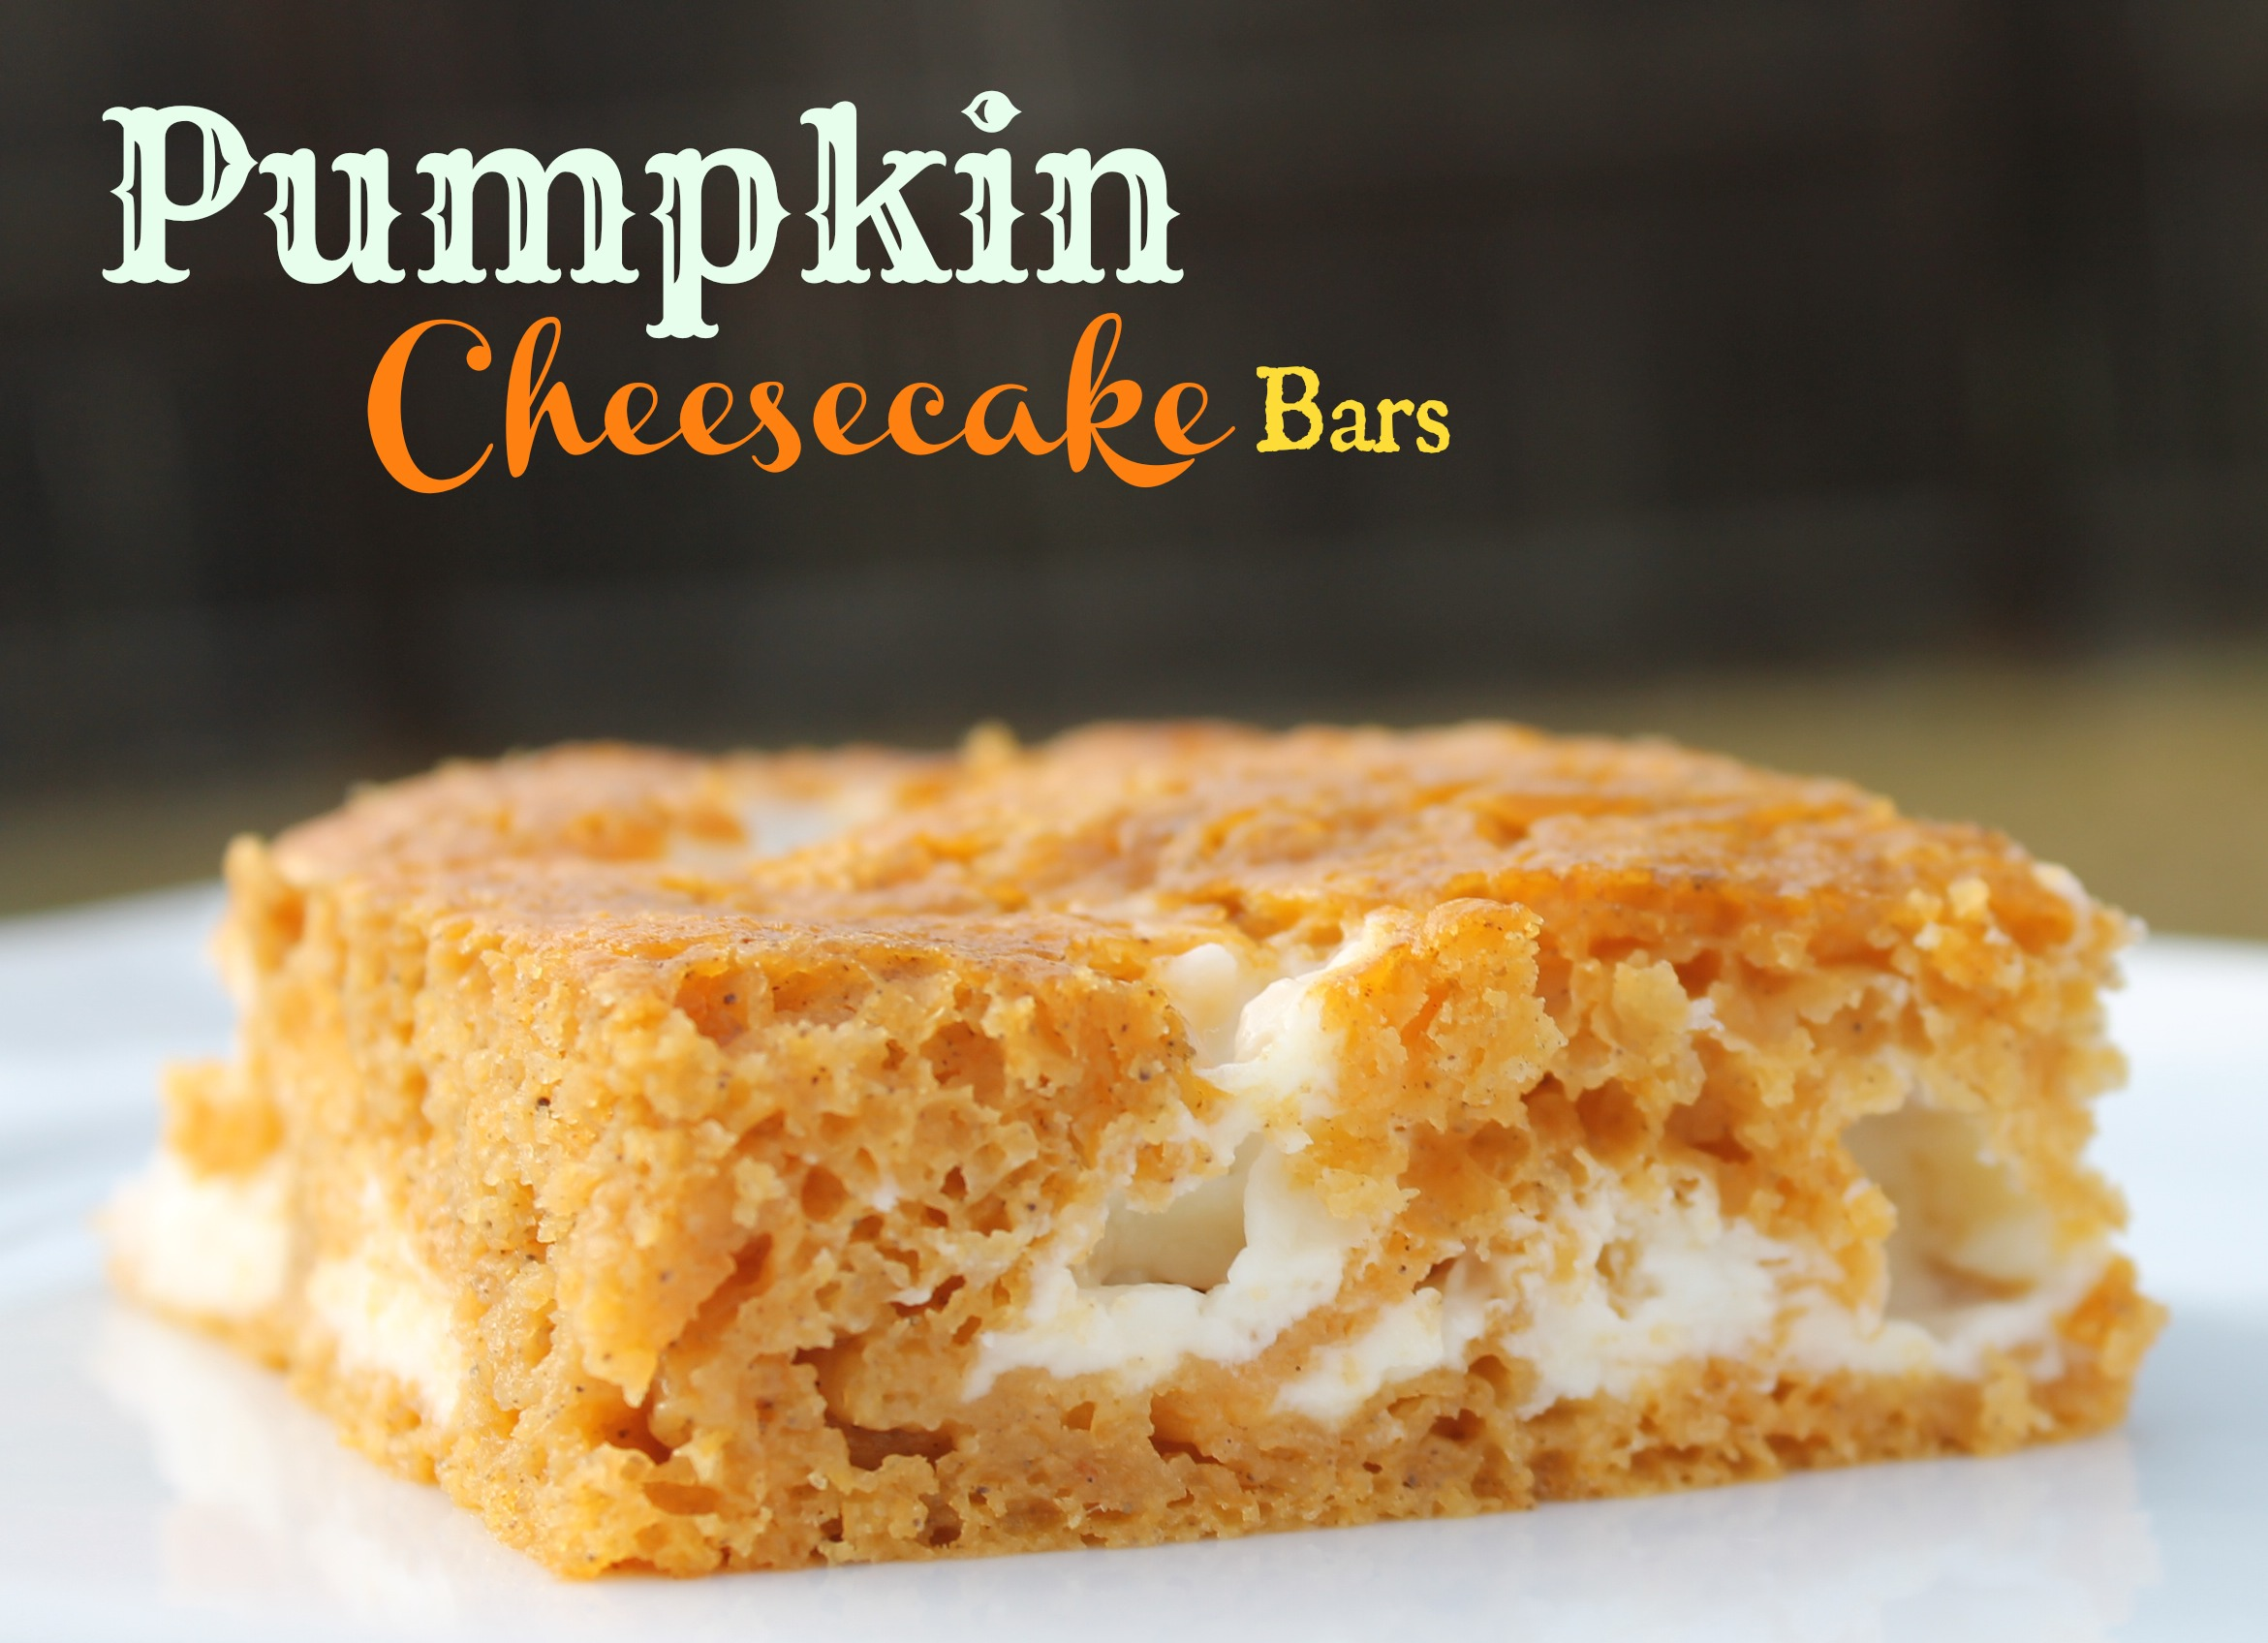 Pumpkin Cheesecake Bar Recipe #Pumpkin #FallRecipe